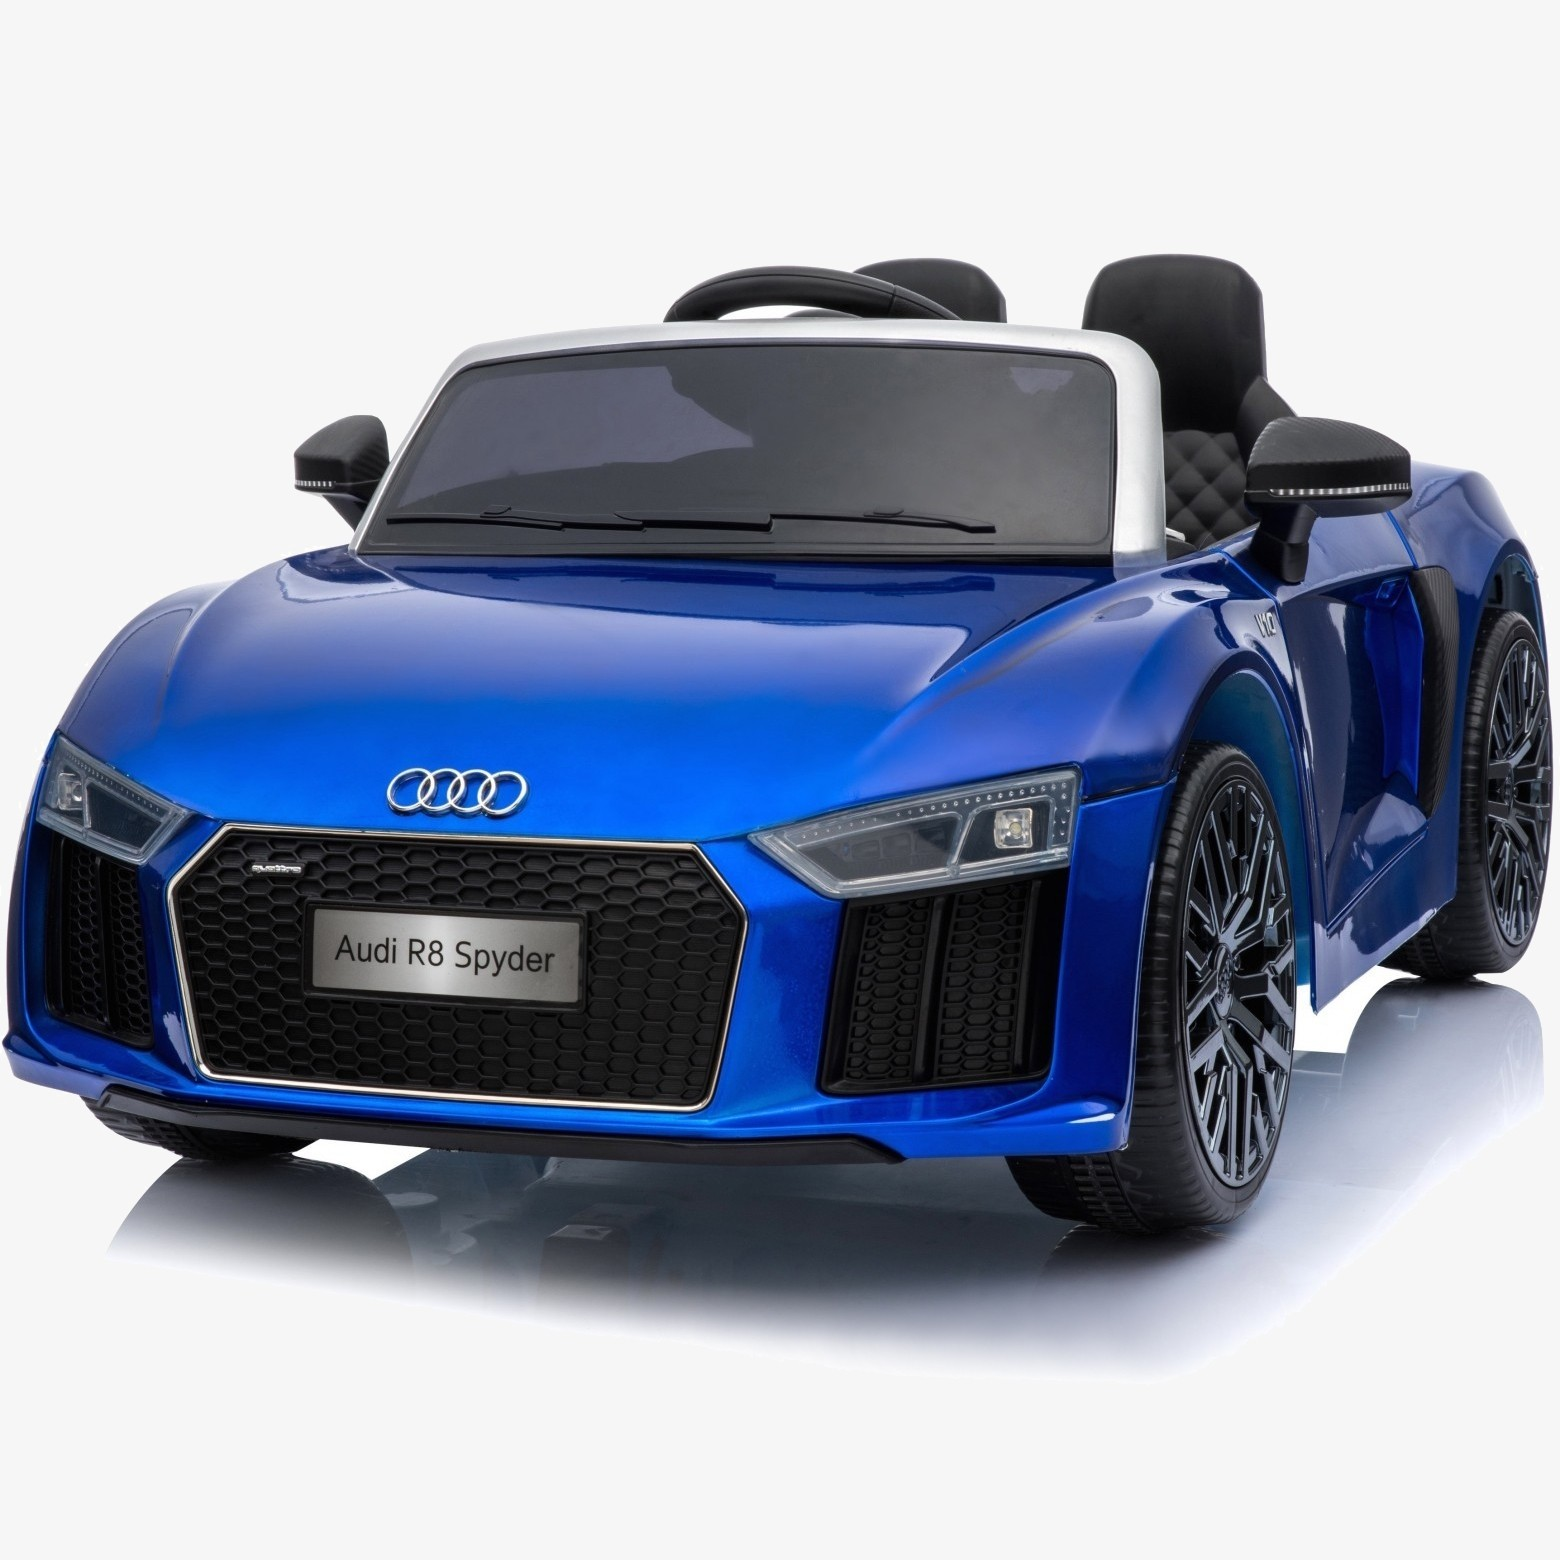 Xtreme 12v Official Licensed Audi R8 Spyder Ride on Car Blue Double Headrest